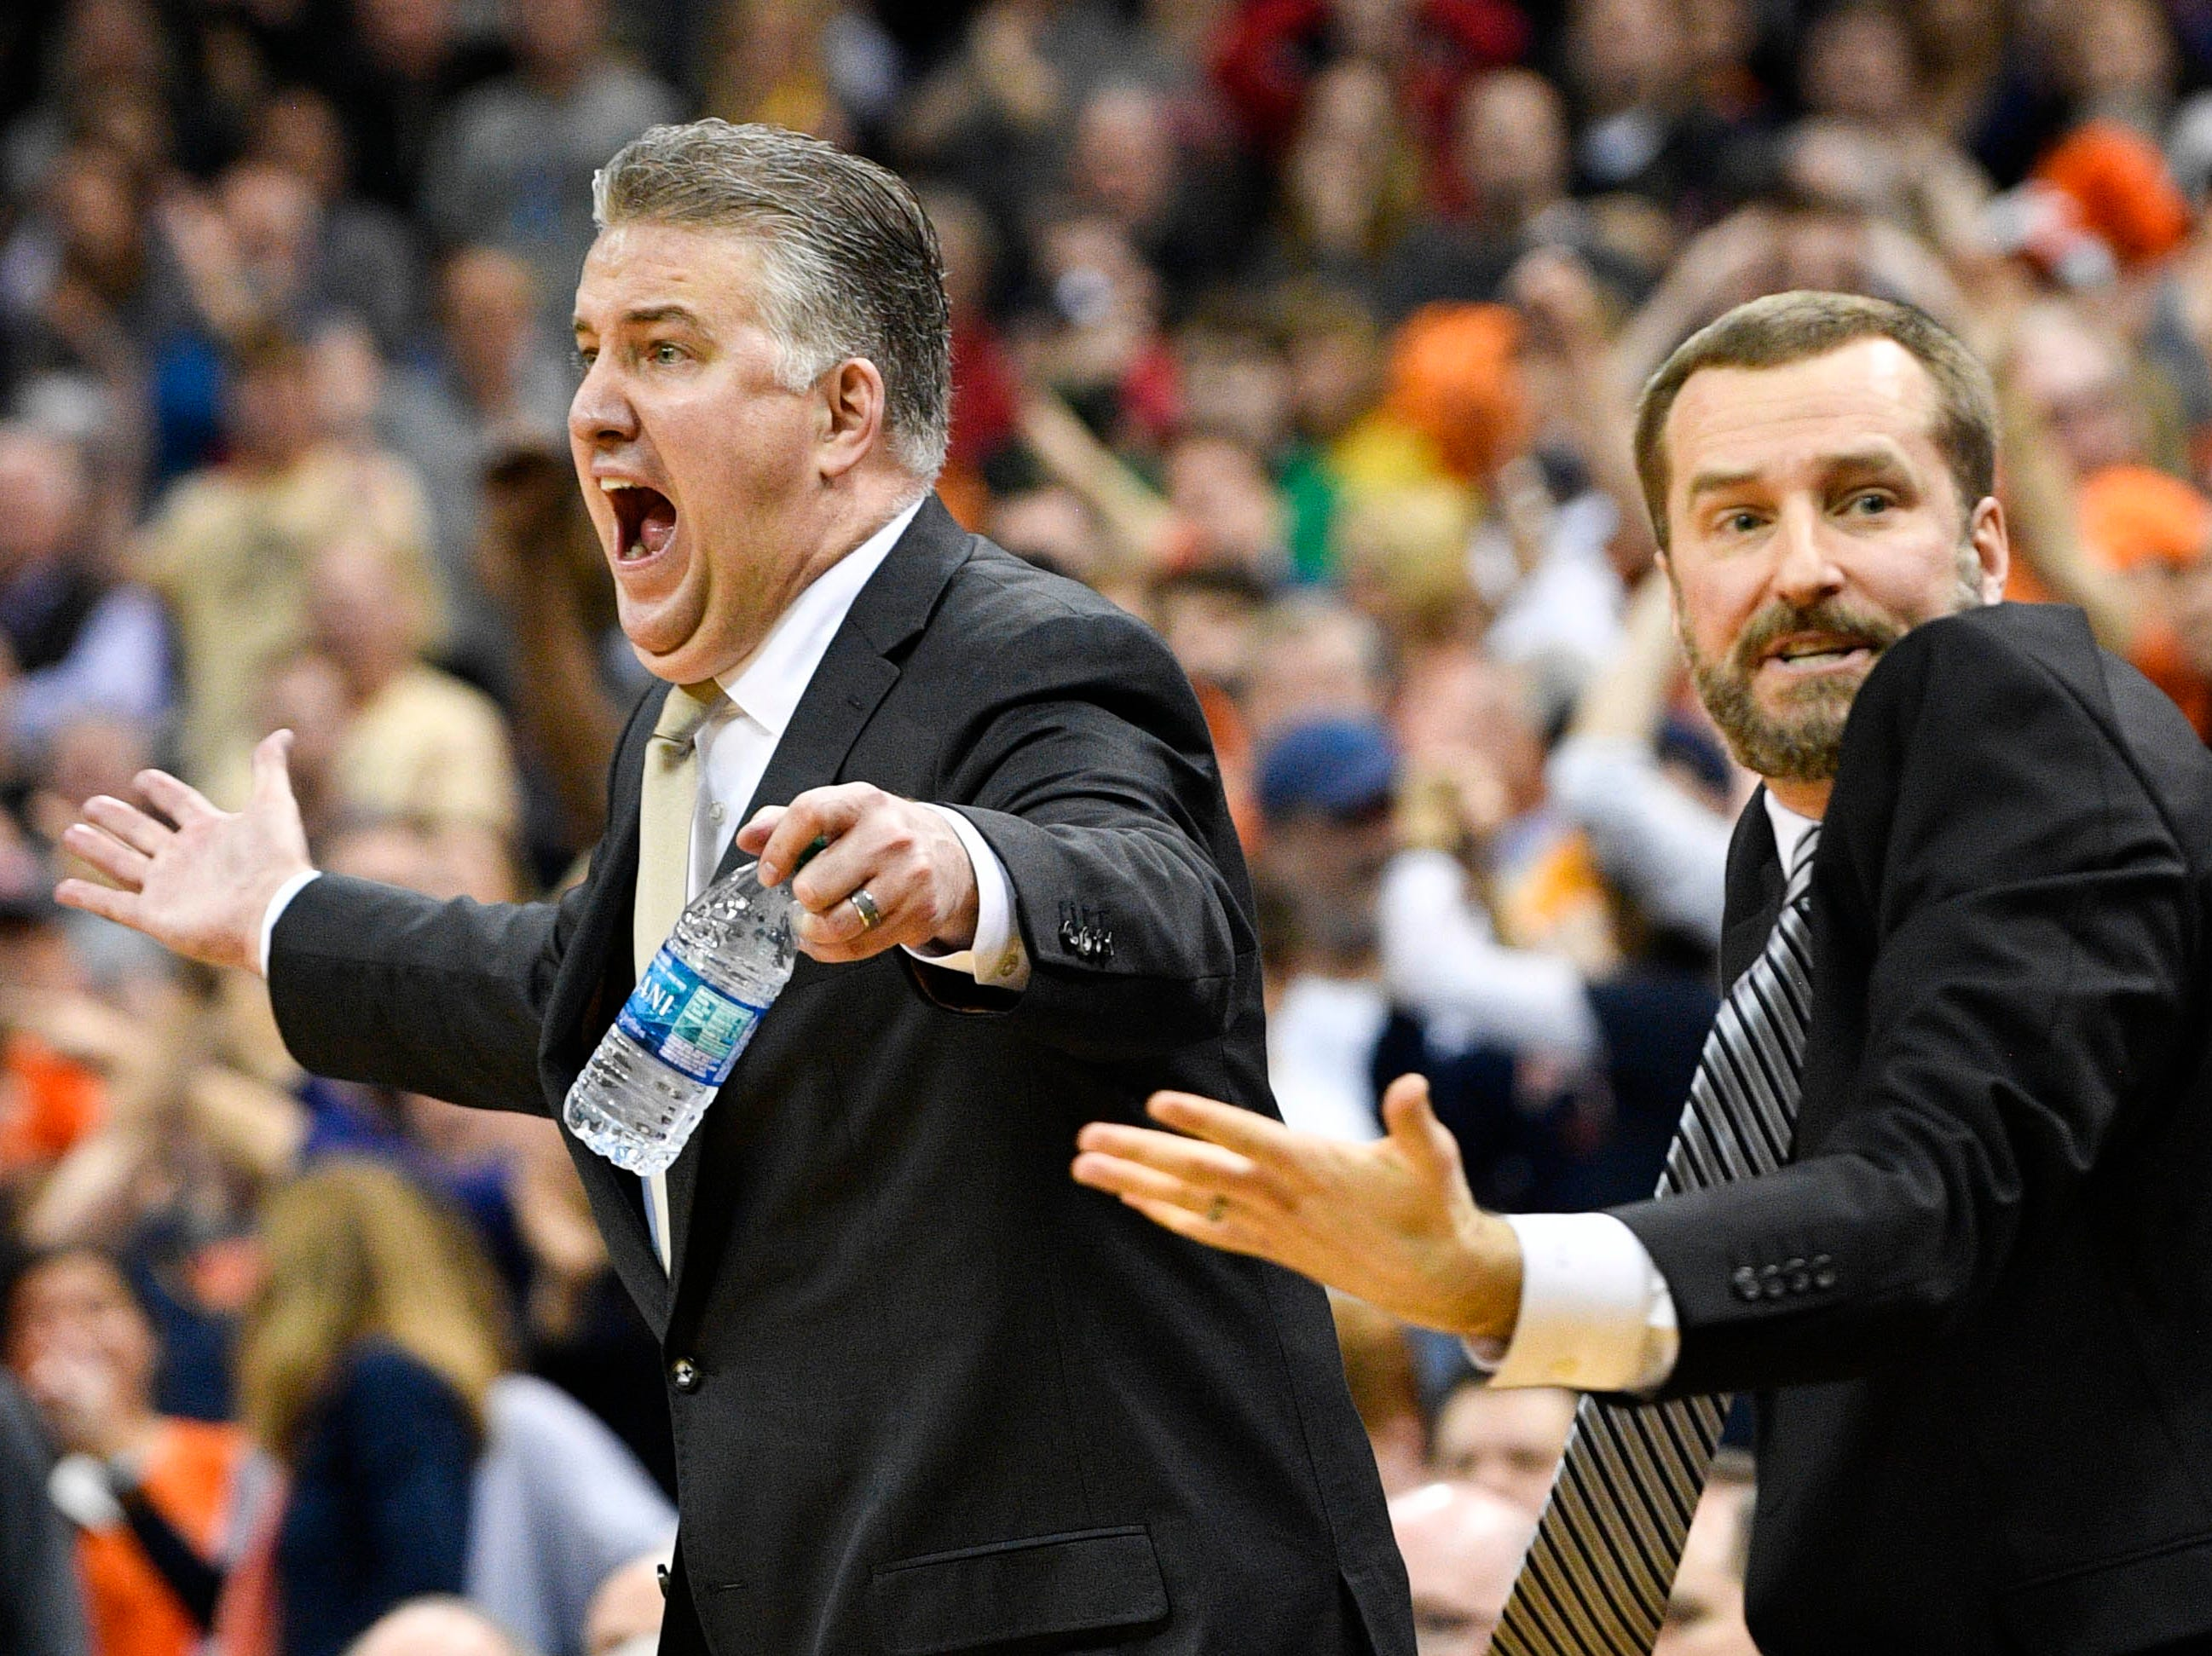 Mar 30, 2019; Louisville, KY, United States; Purdue Boilermakers head coach Matt Painter reacts during overtime in the championship game against the Virginia Cavaliers of the south regional of the 2019 NCAA Tournament at KFC Yum Center. Mandatory Credit: Jamie Rhodes-USA TODAY Sports